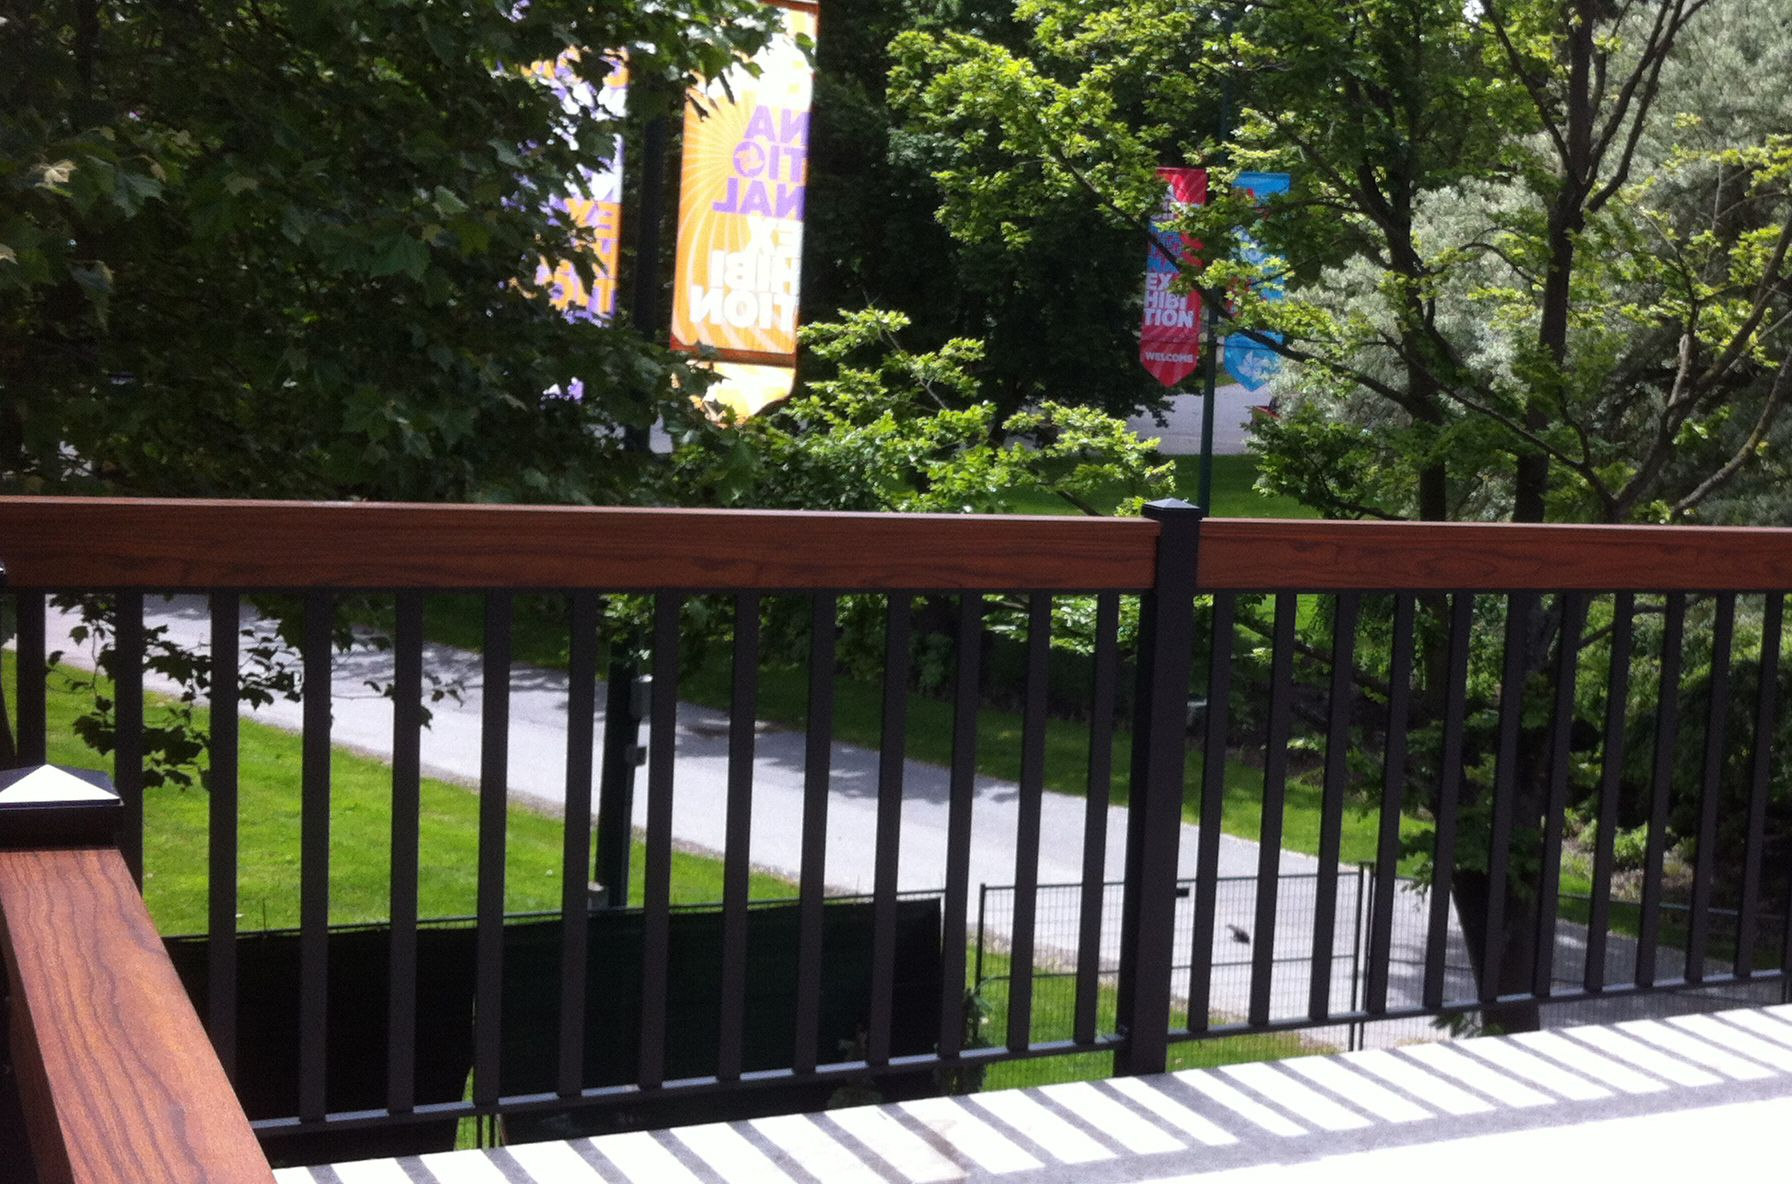 Wood Railings Without The Hassle Durarail Has The Answer An Authentic Looking Wood Grain Finish On Durable Al Vinyl Deck Railing Vinyl Deck Aluminum Railing